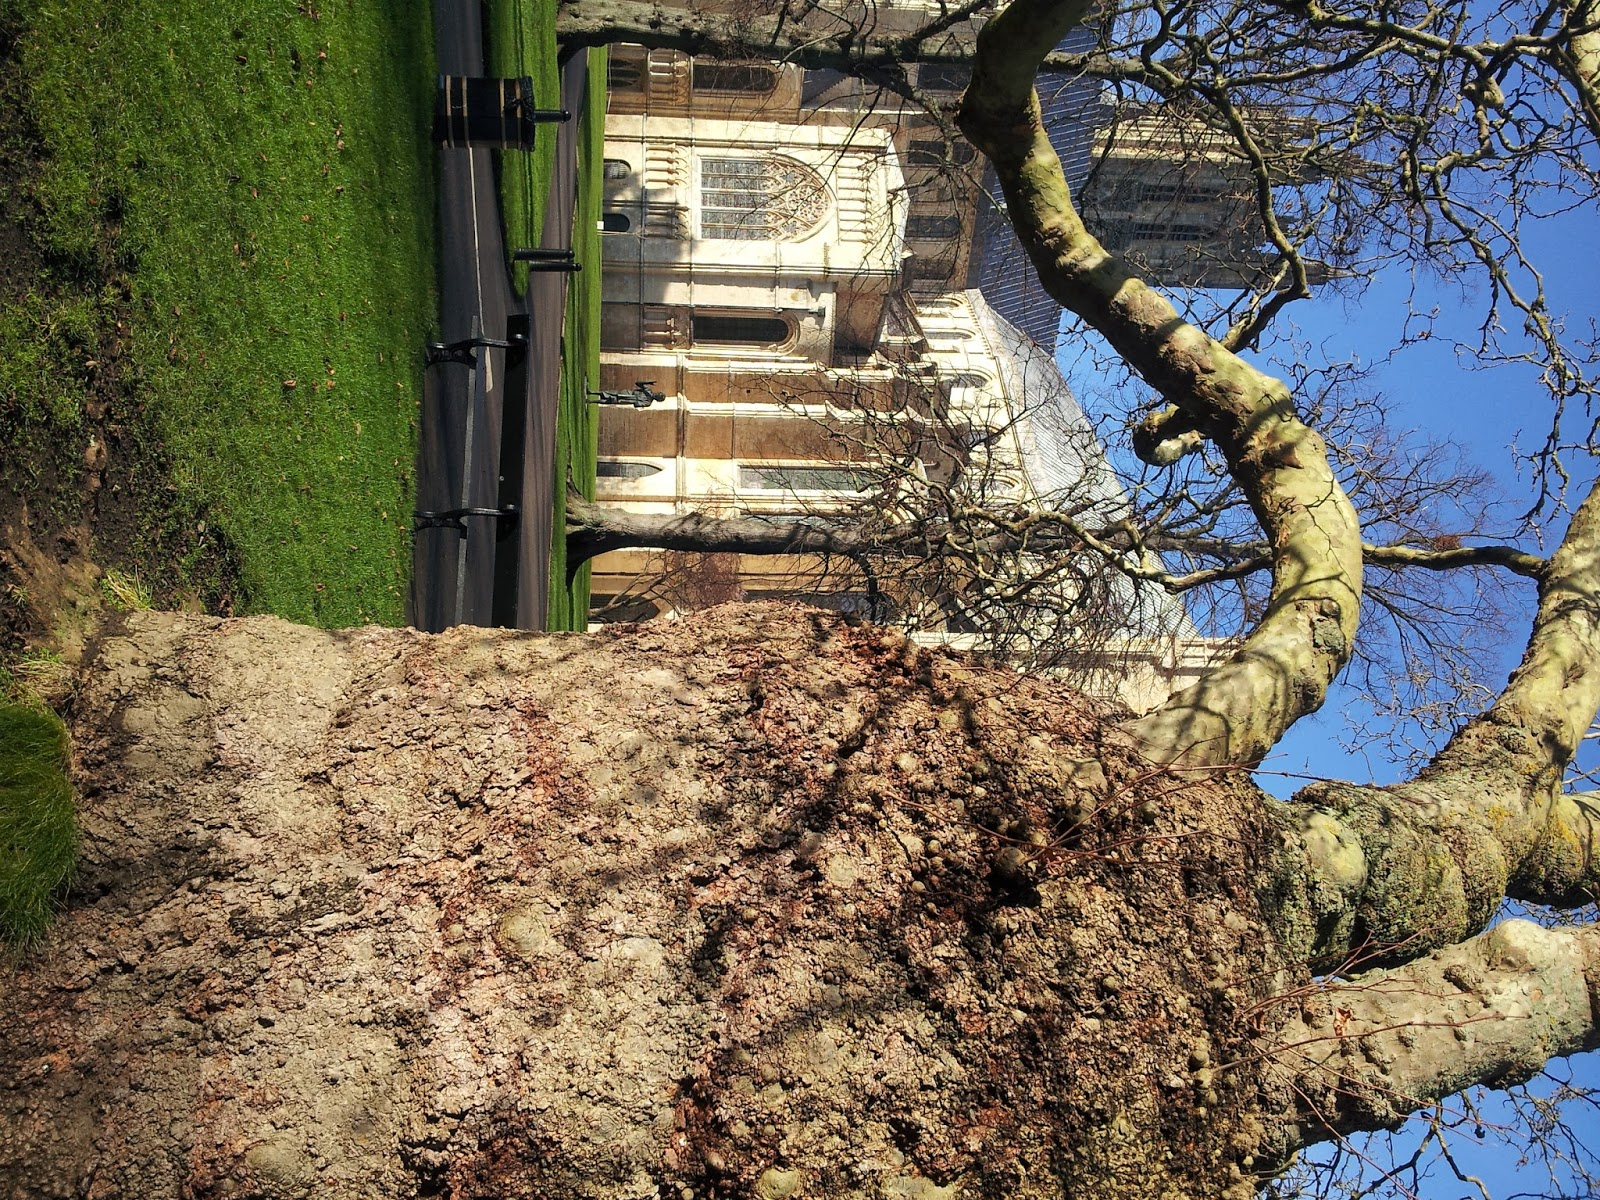 Home dear mr kourouma - Old London Plane Tree Frames The View Of Canterbury Cathedral